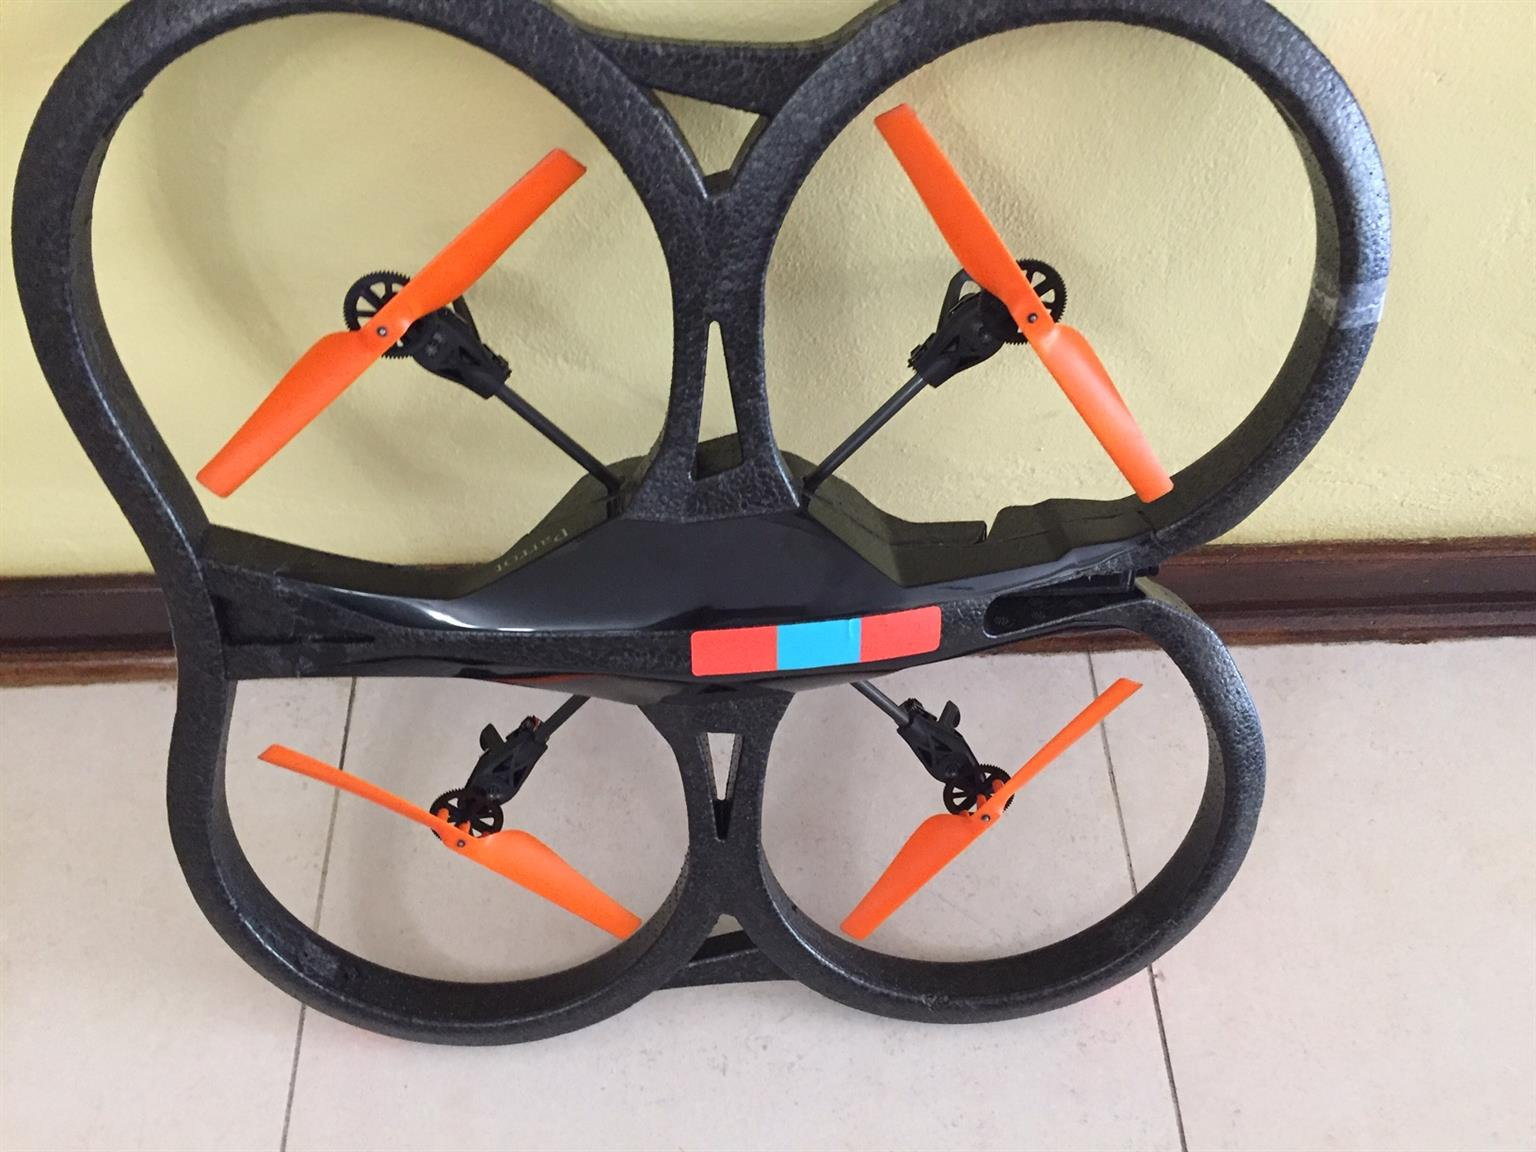 PARROT AR.Drone, 2.0 power edition